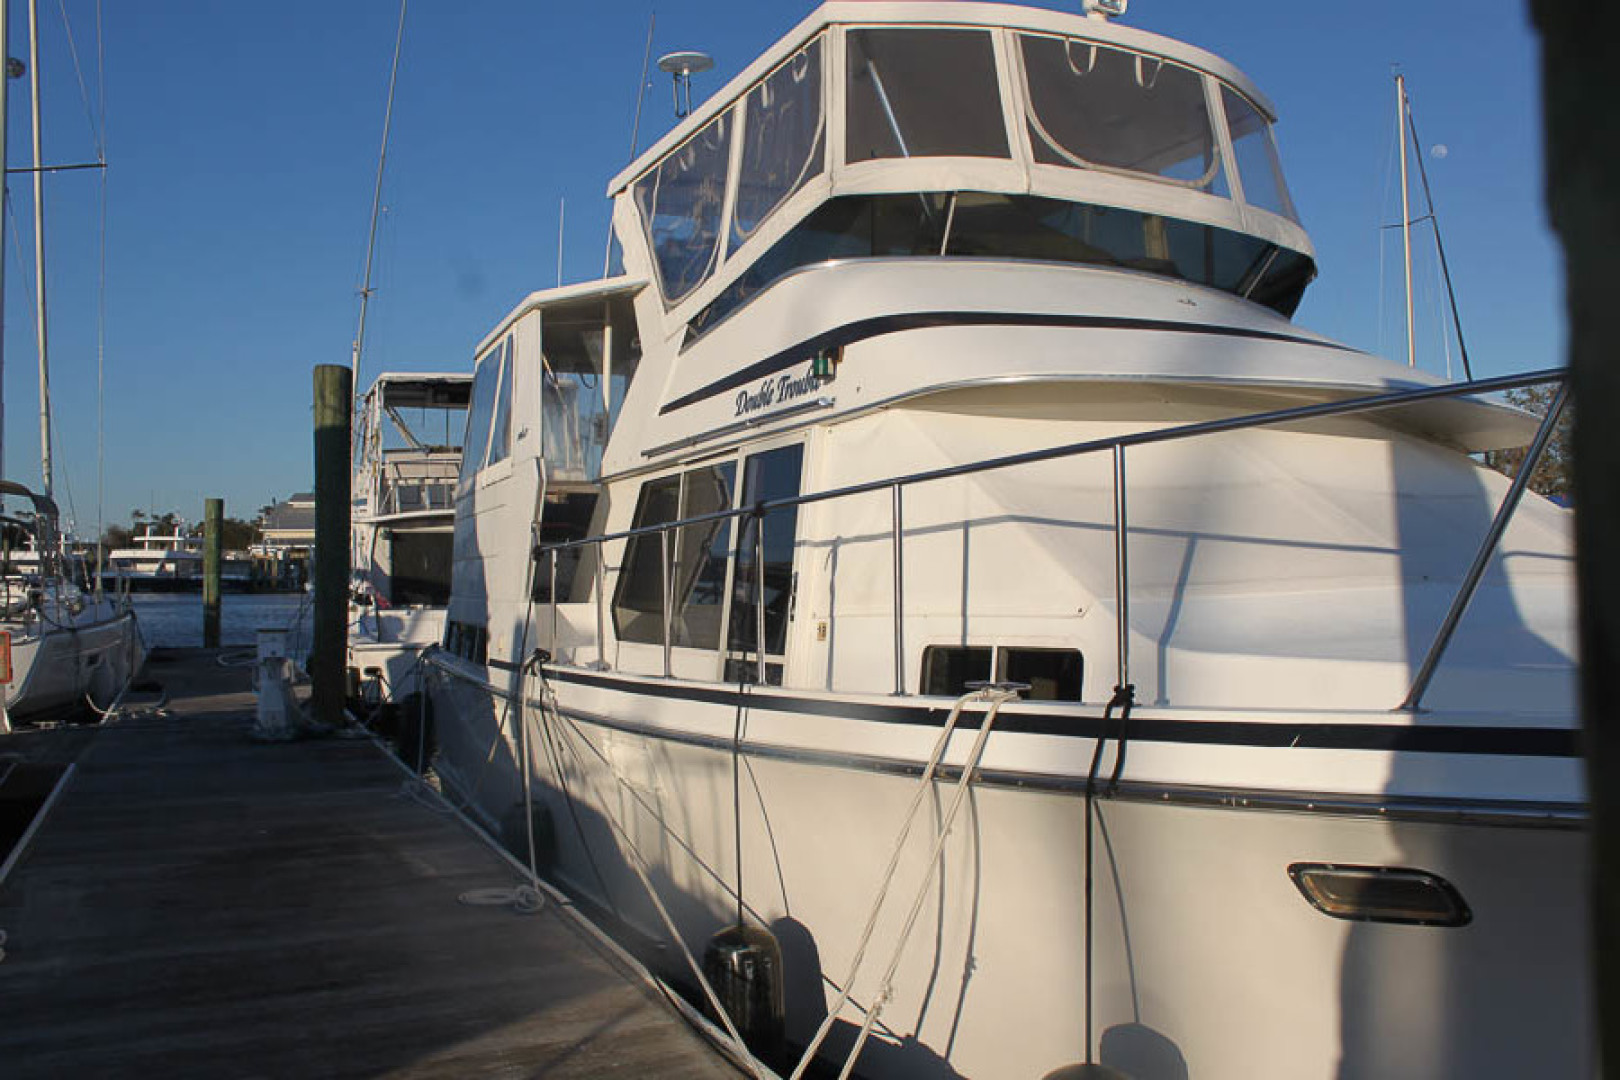 44' Tollycraft 1992 Cockpit Motor Yacht Double Trouble